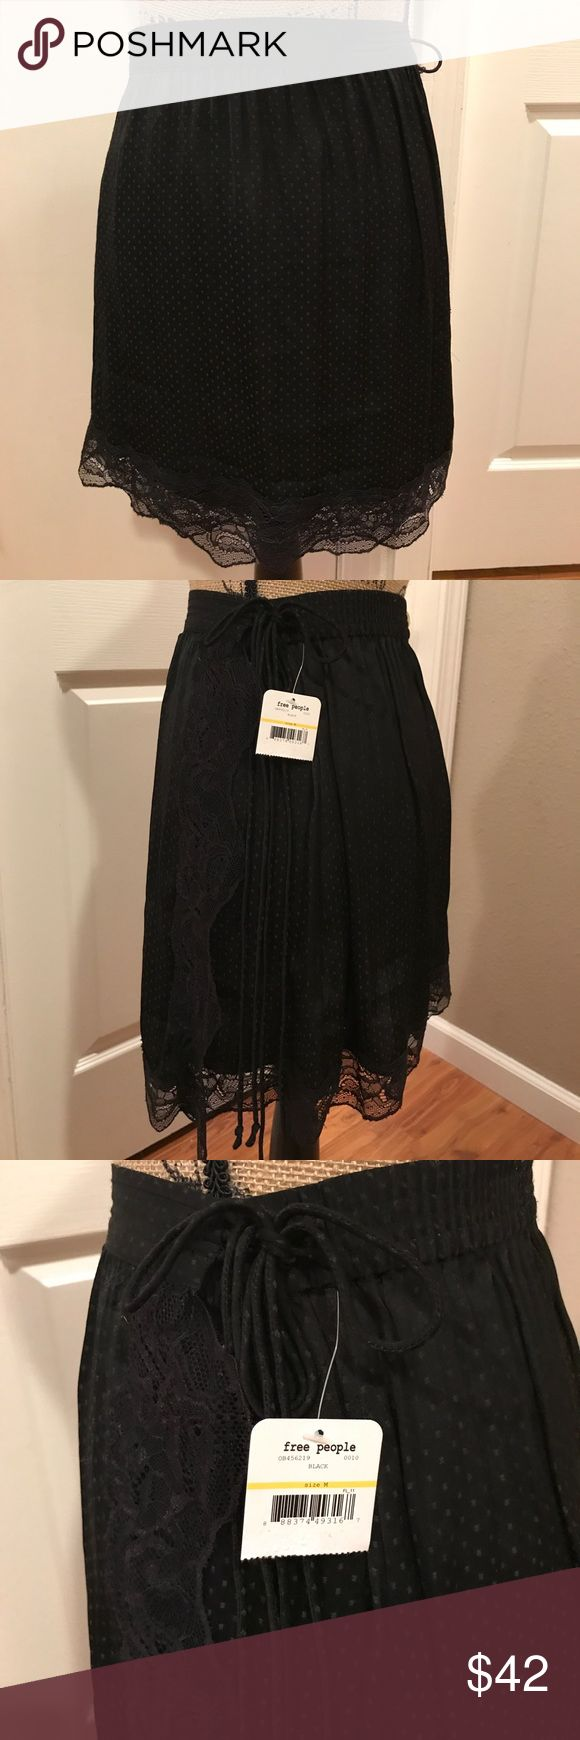  FREE PEOPLE  Tie Side Half Slip Skirt This skirt is adorable and fun!  New with tags! Free People Skirts Mini